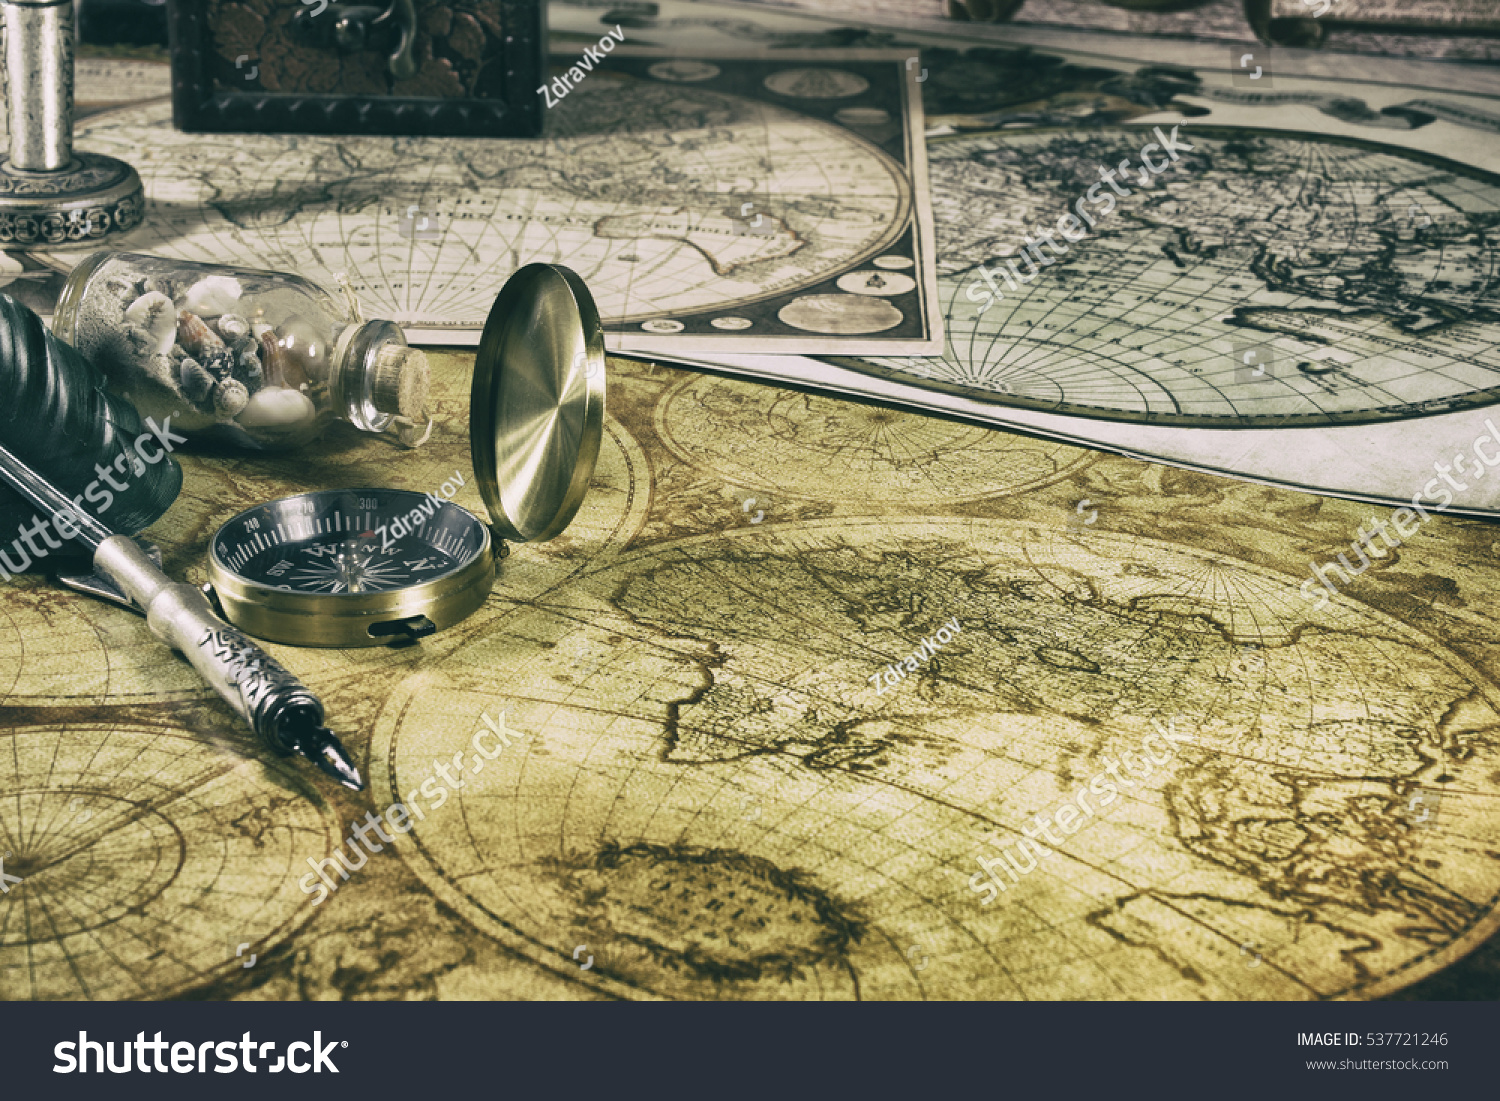 Old compass fountain pen on ancient stock photo 537721246 old compass fountain pen on ancient maps of the world nautical items sciox Gallery